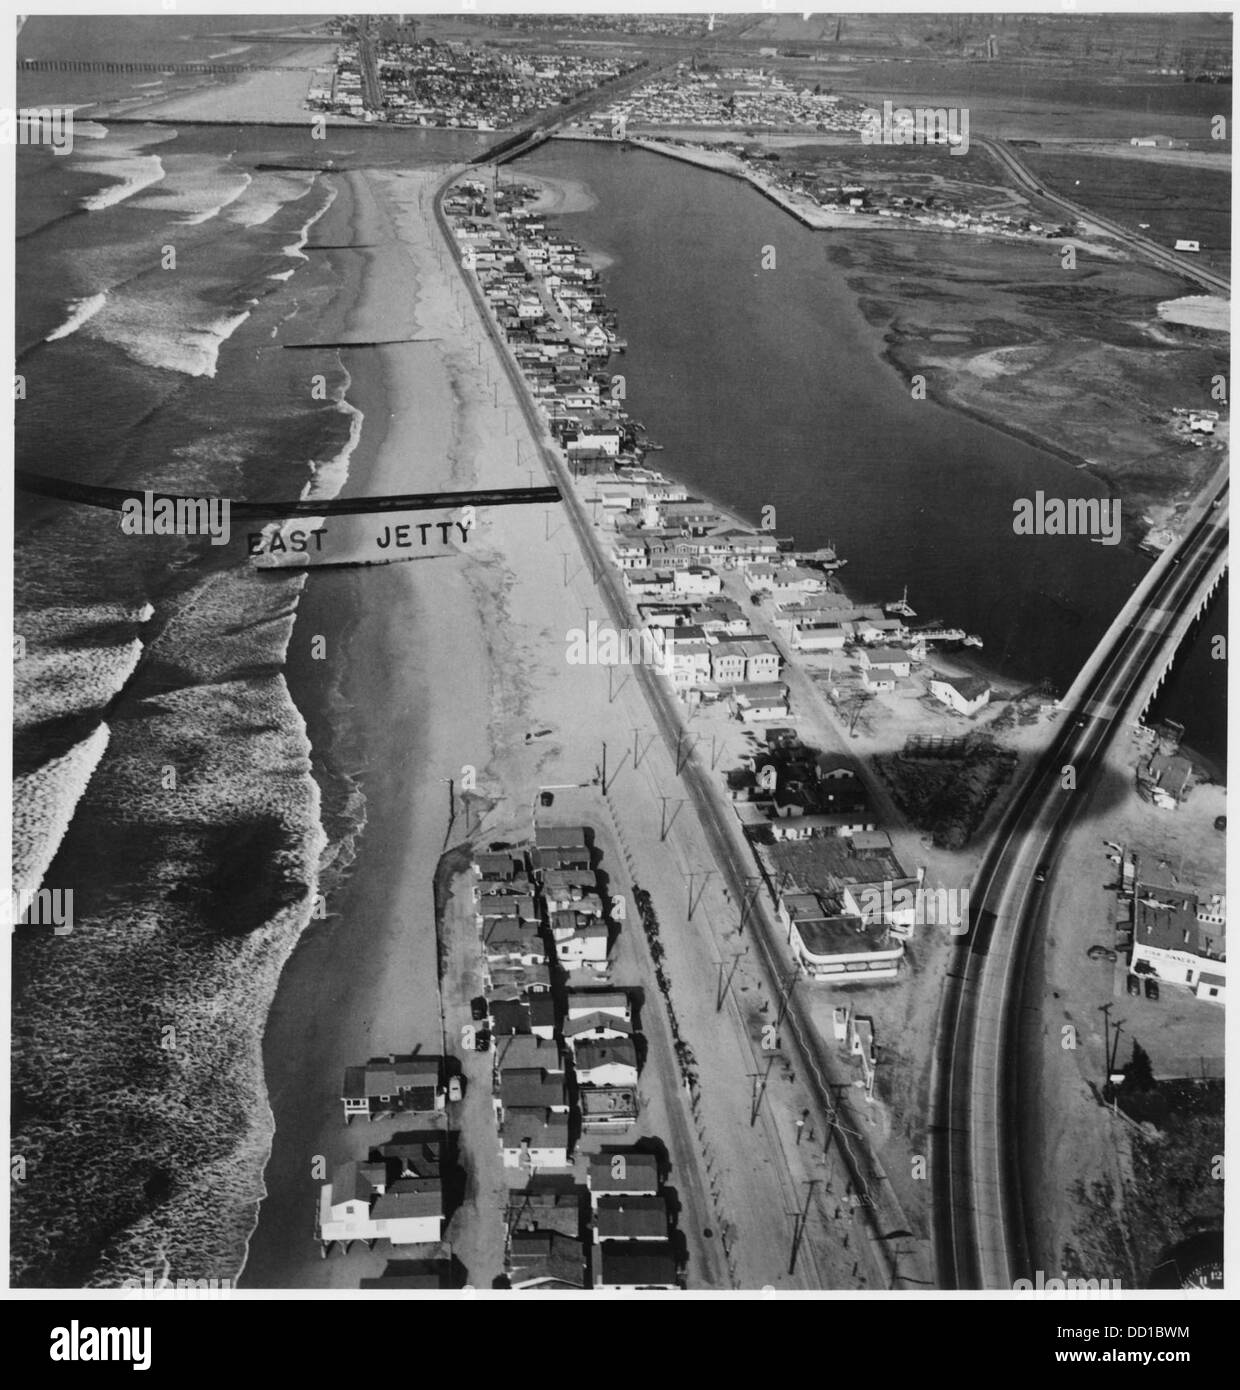 Naval Ammunition and Net Depot, Seal Beach, California. (Aerial view of jetty and coastline.) - - 295515 - Stock Image